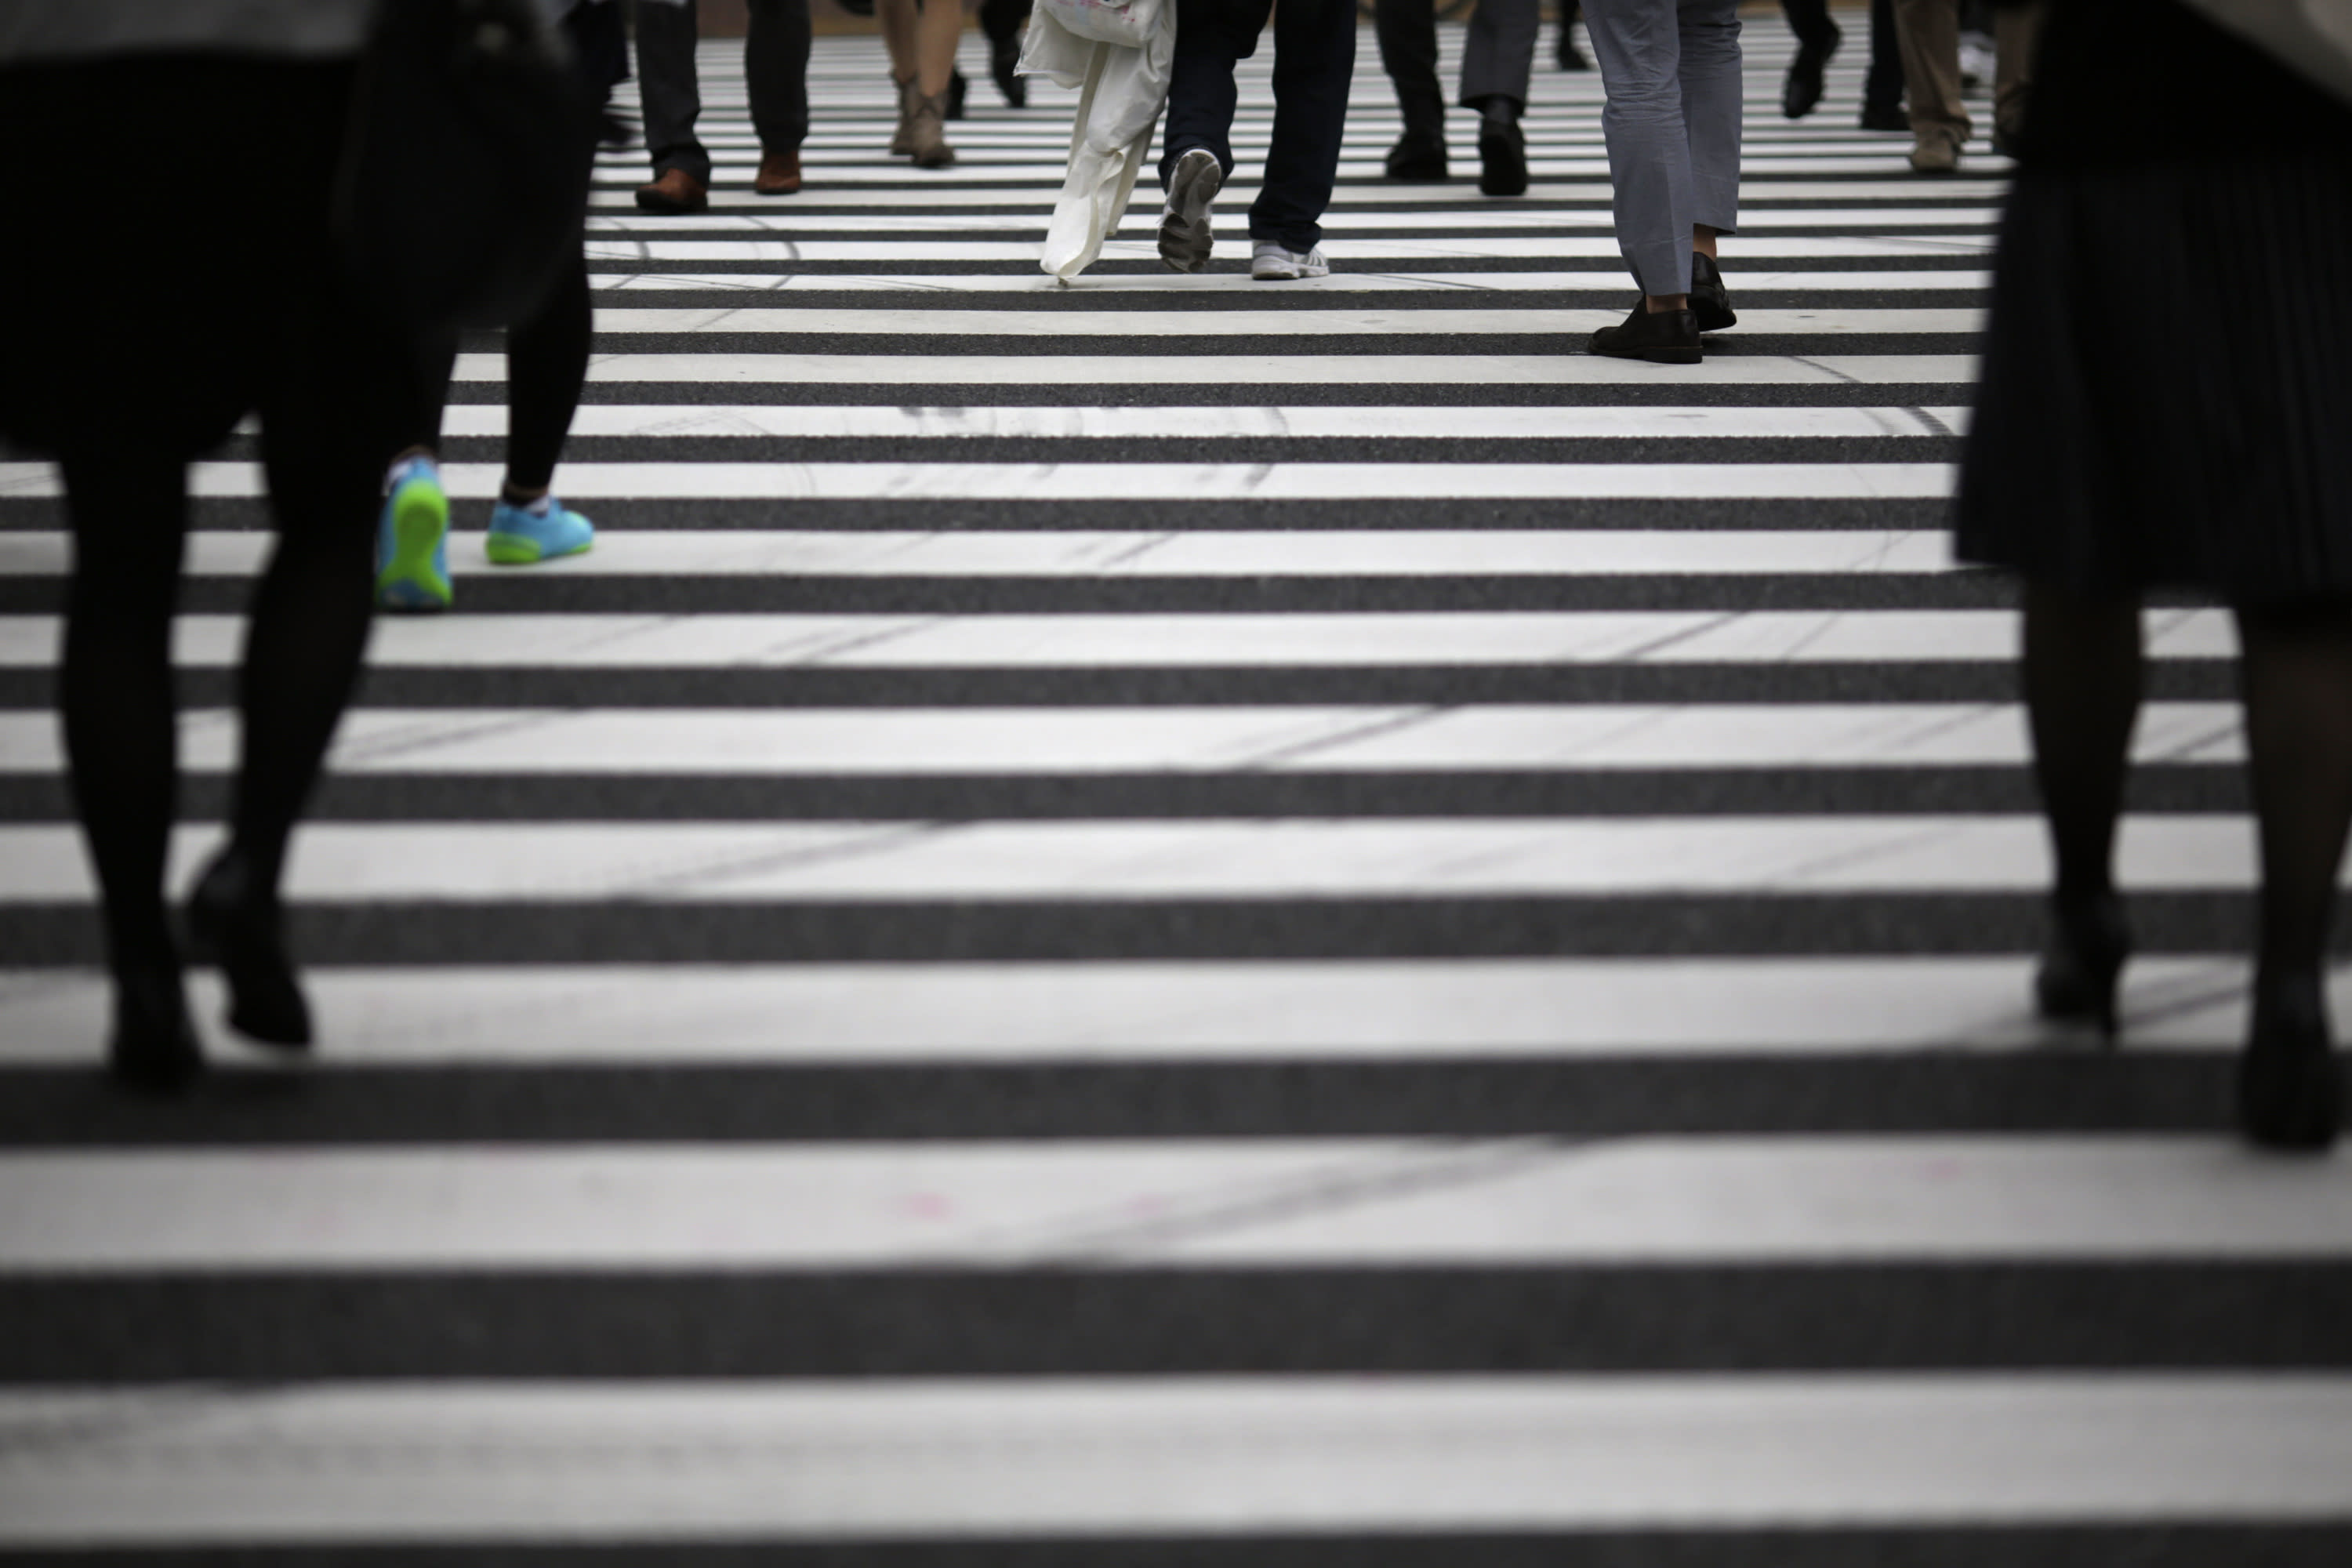 Japan plans extra budget, handouts, to pump up recovery